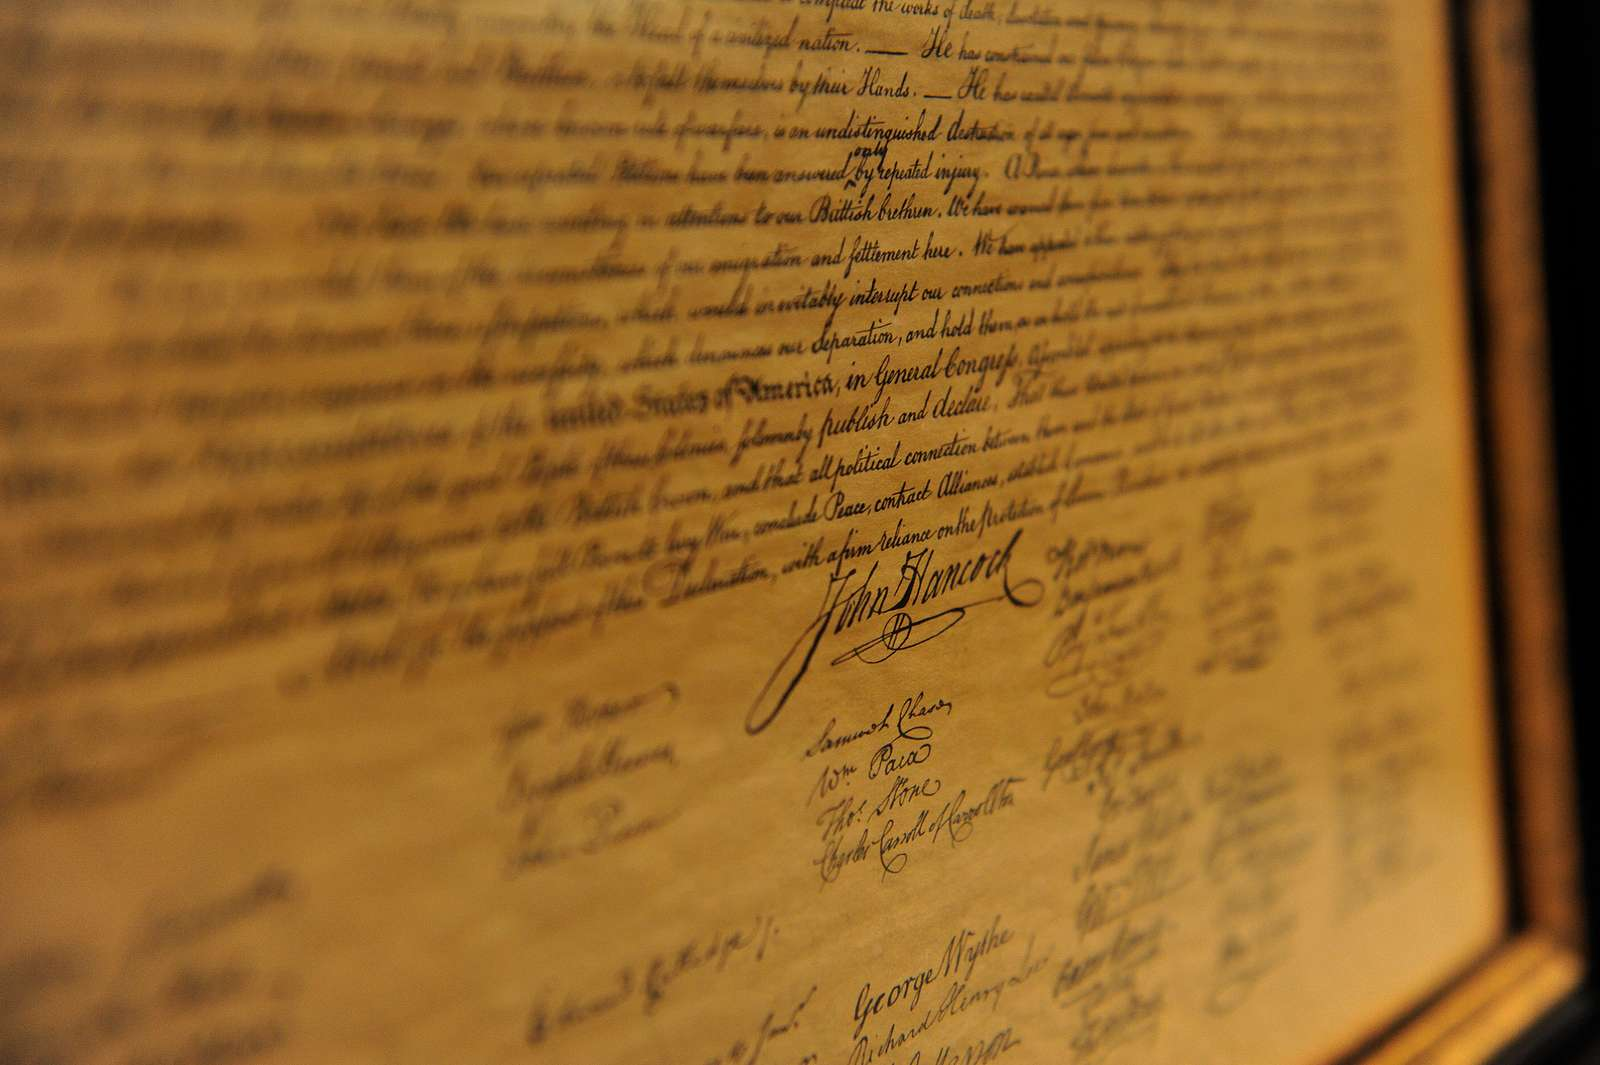 The Declaration of Independence, drafted and signed